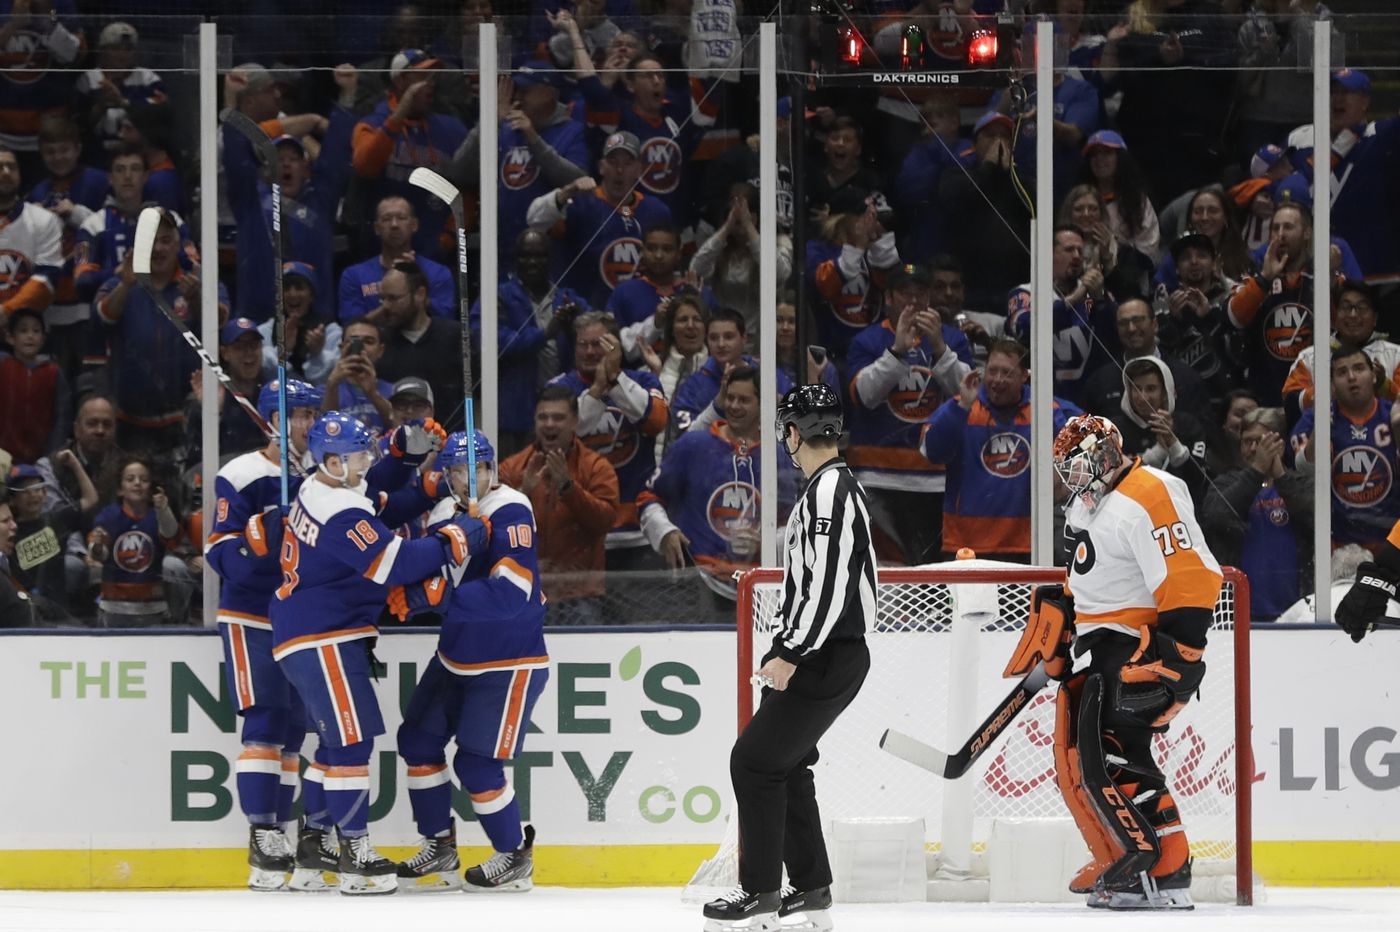 Carter Hart takes the blame for Flyers' 5-3 loss to Islanders